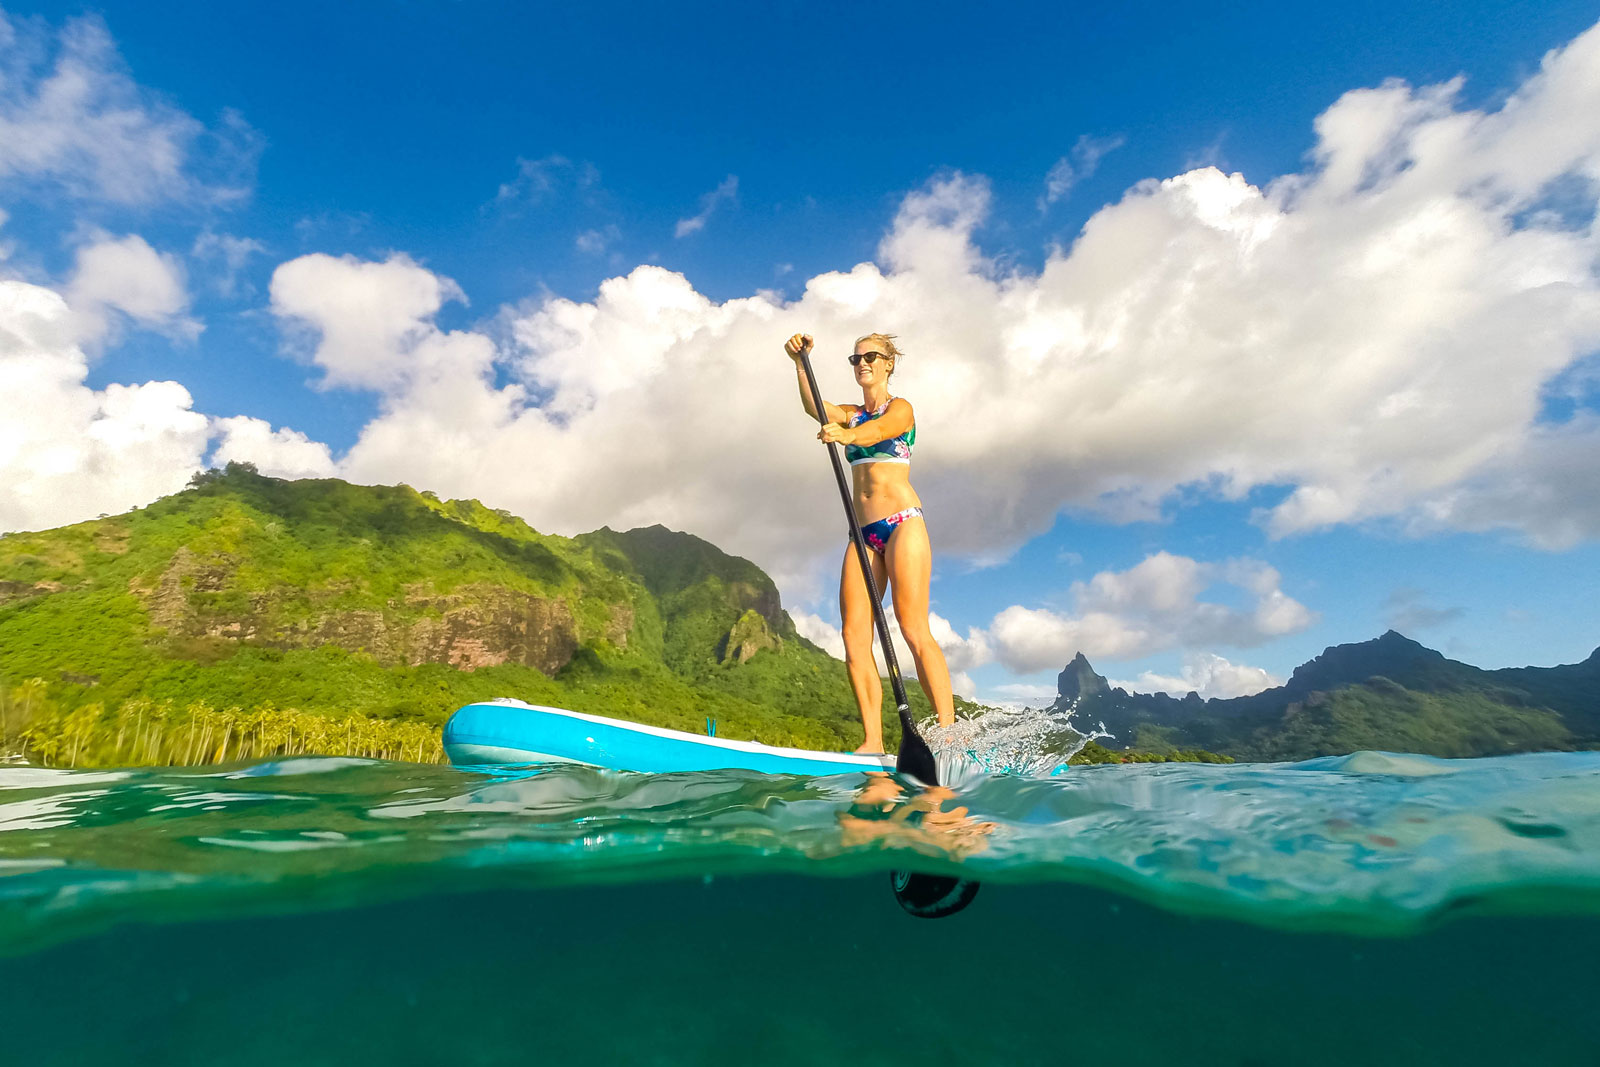 Paddle boarding in pacific